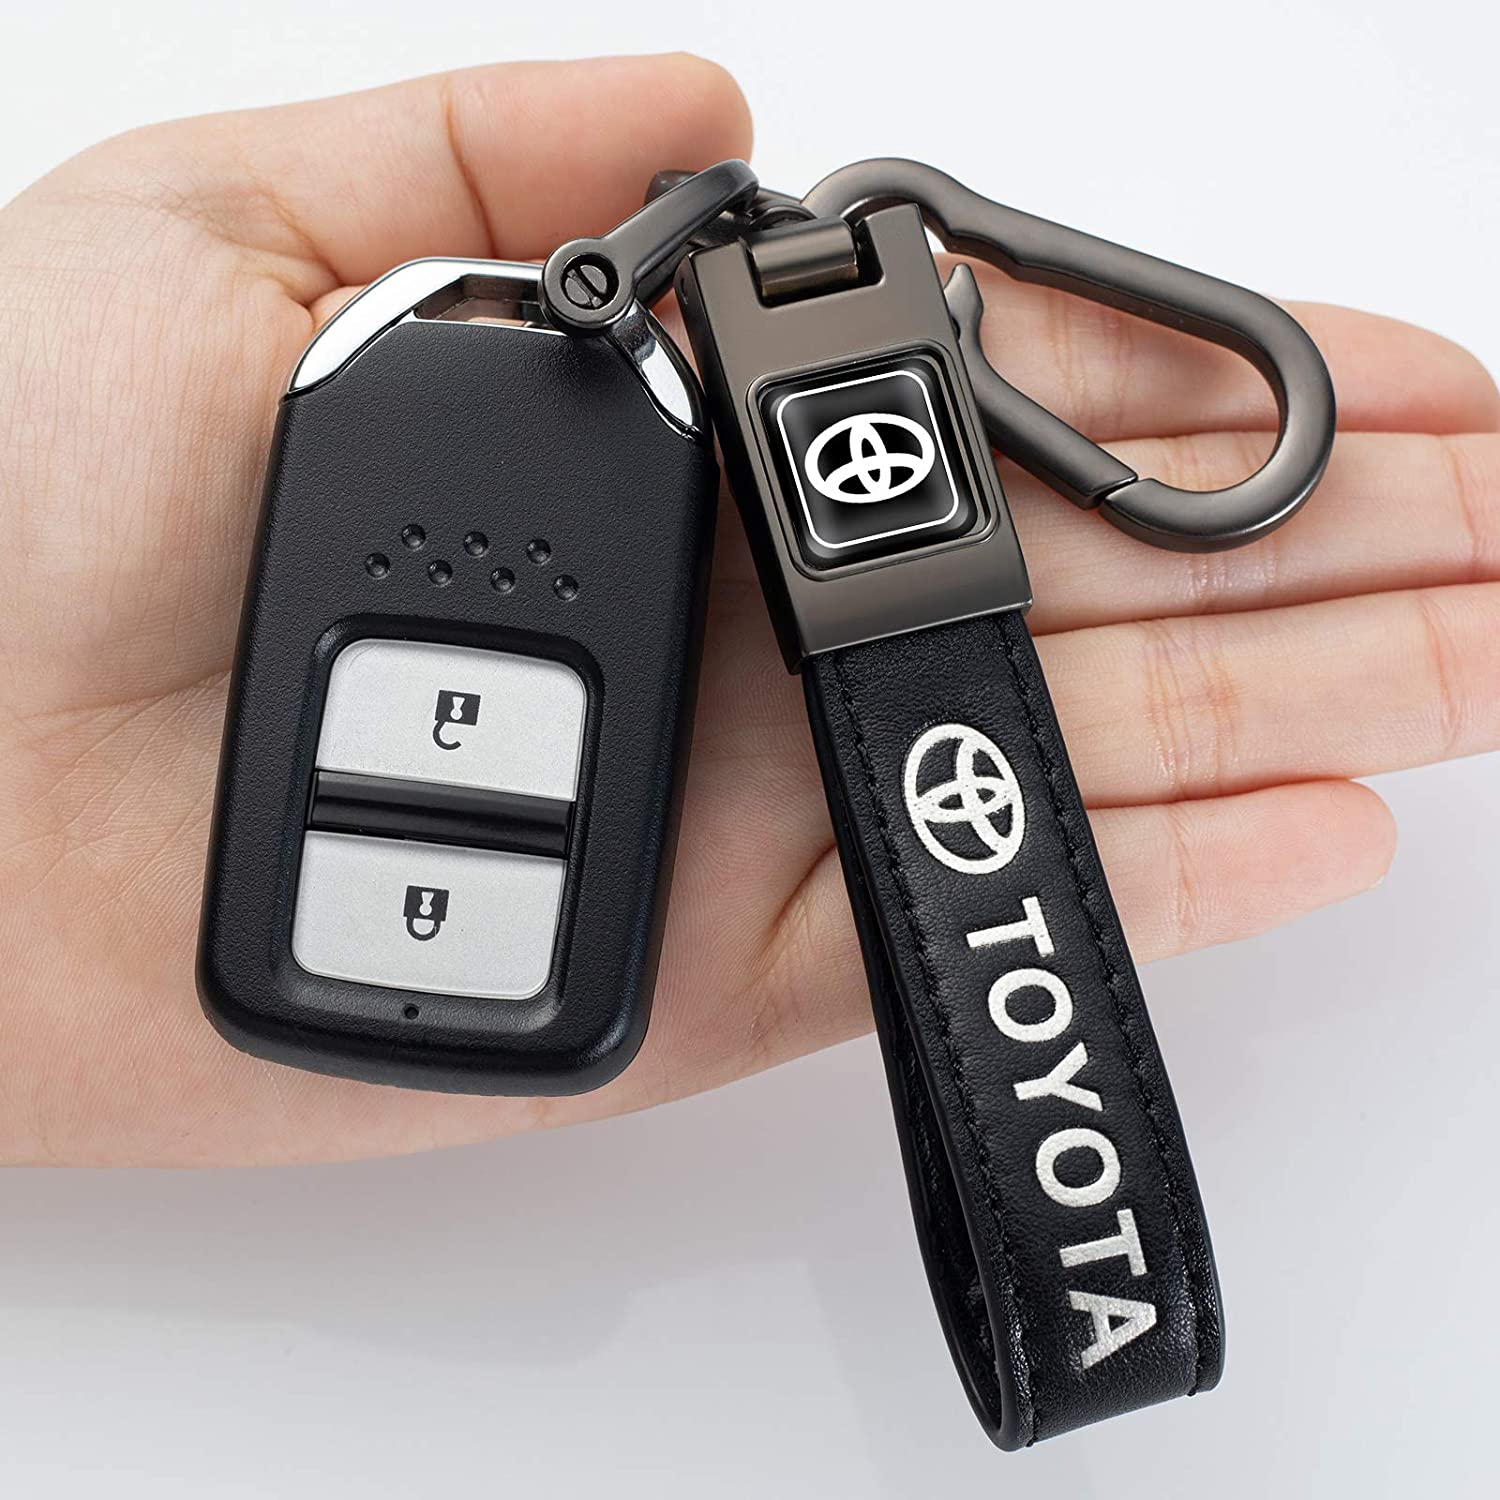 Suitable for Subaru Keychain Men/'s and Women/'s Gifts Birthday Gifts NOFEAR Leather car Logo Keychain Key Chain Key Ring Accessory Black-1pcs